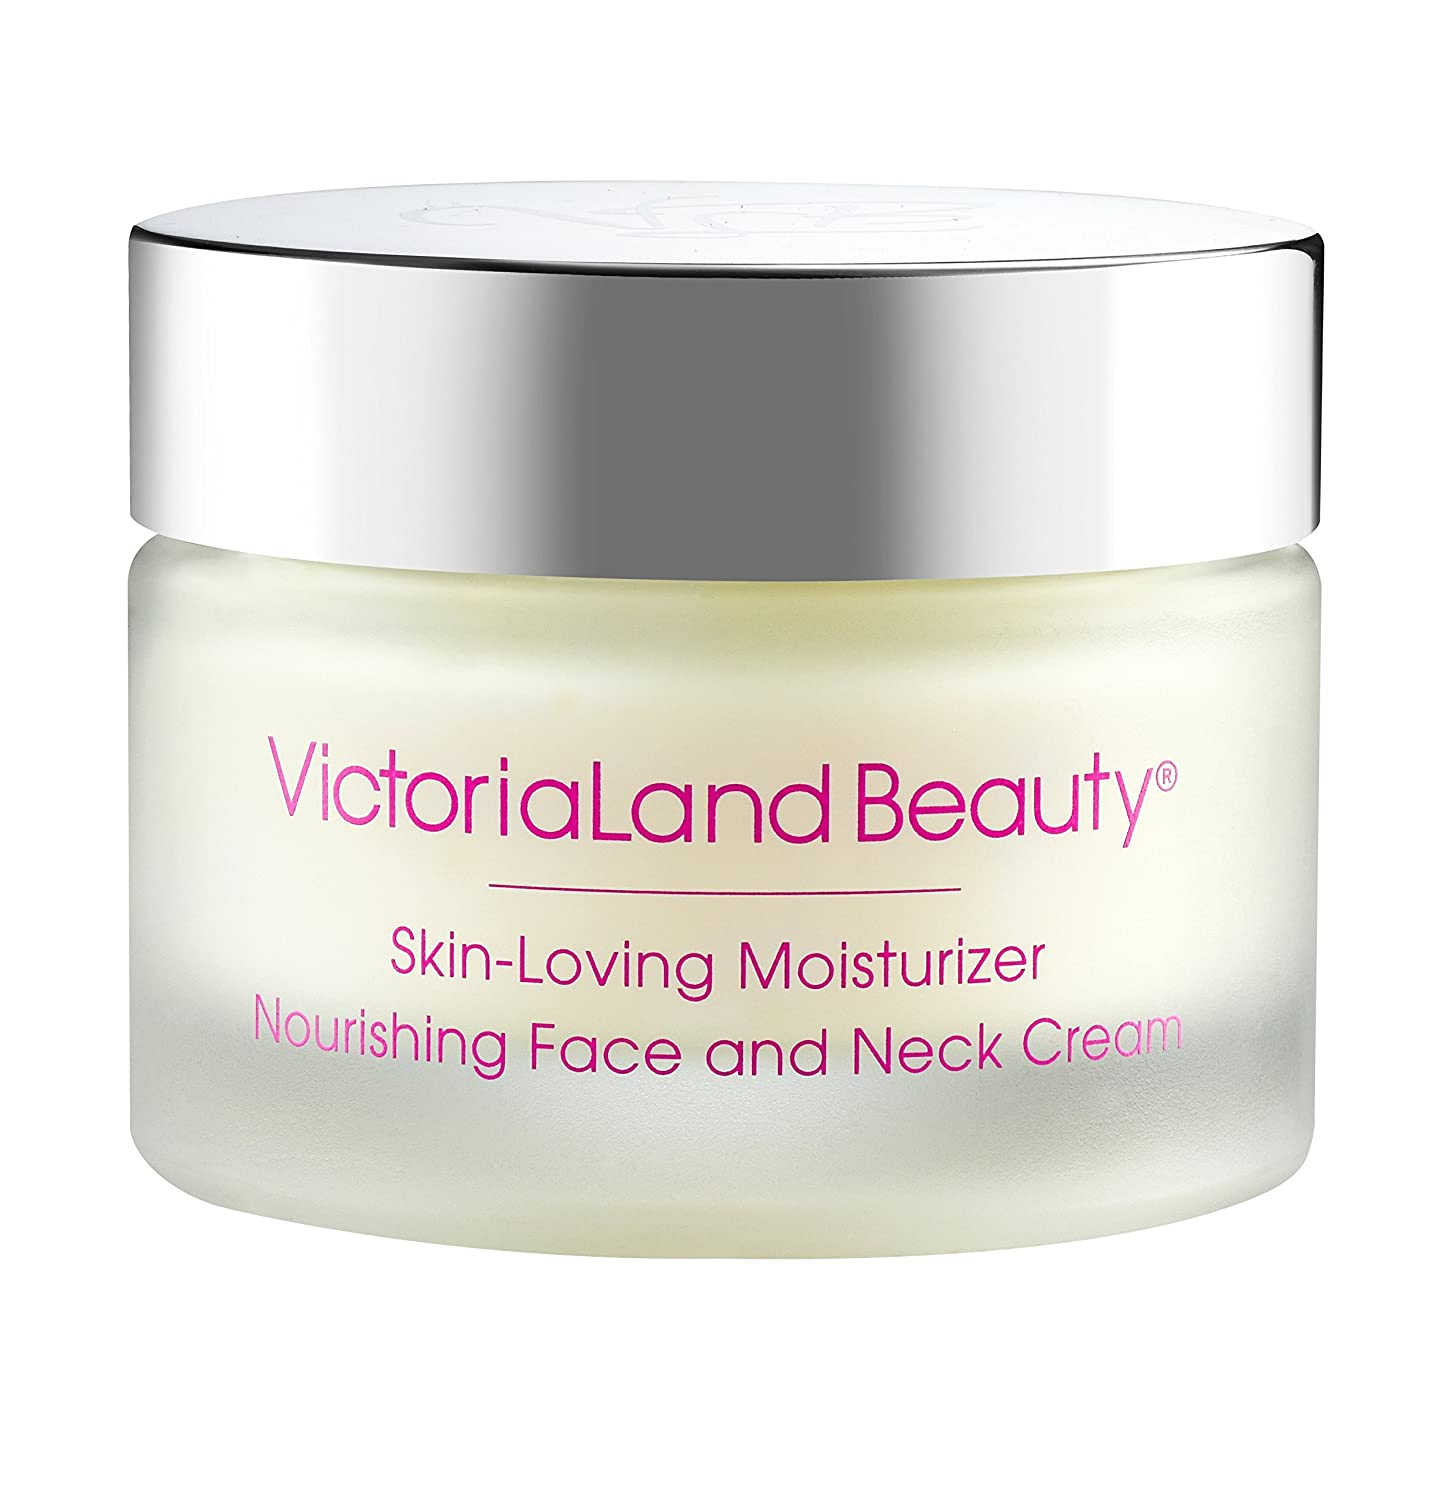 VictoriaLand Beauty Nourishing Face and Neck Cream - Skin-Loving Moisturizer (1.70 oz)